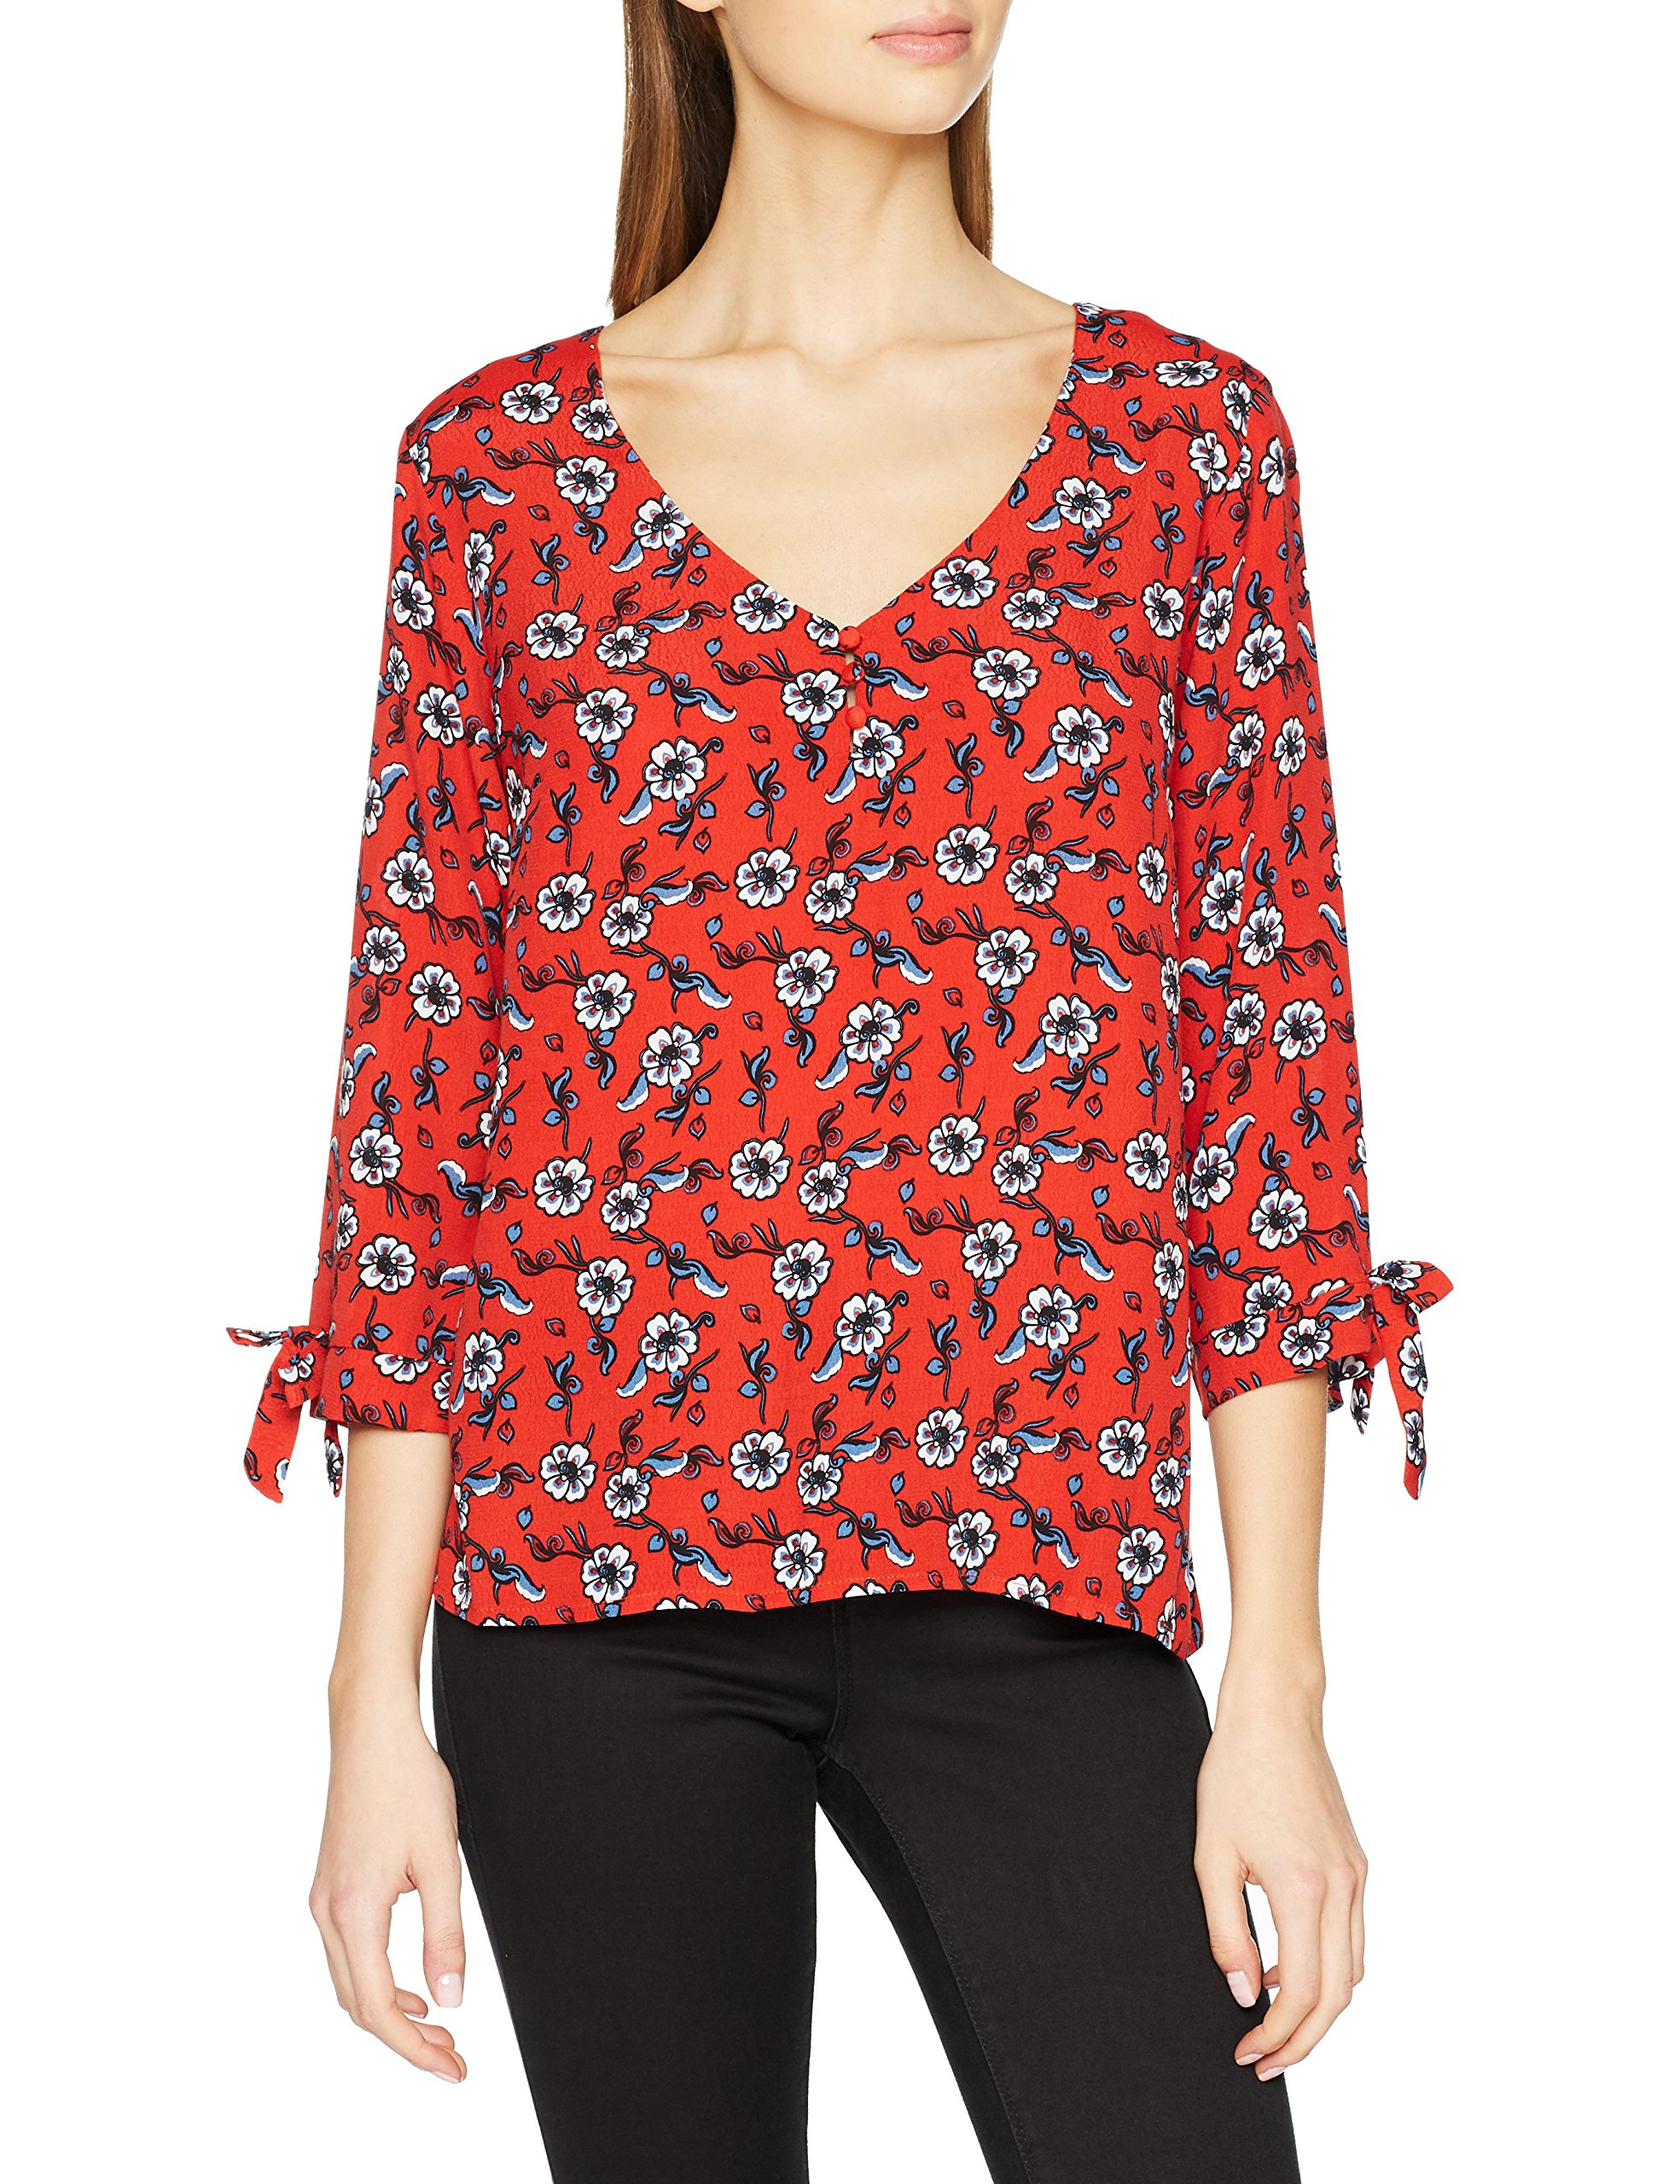 Ddp LonguesRouge34taille Manches F4jenym16 TT shirt FabricantXsFemme SVpqLUGzM